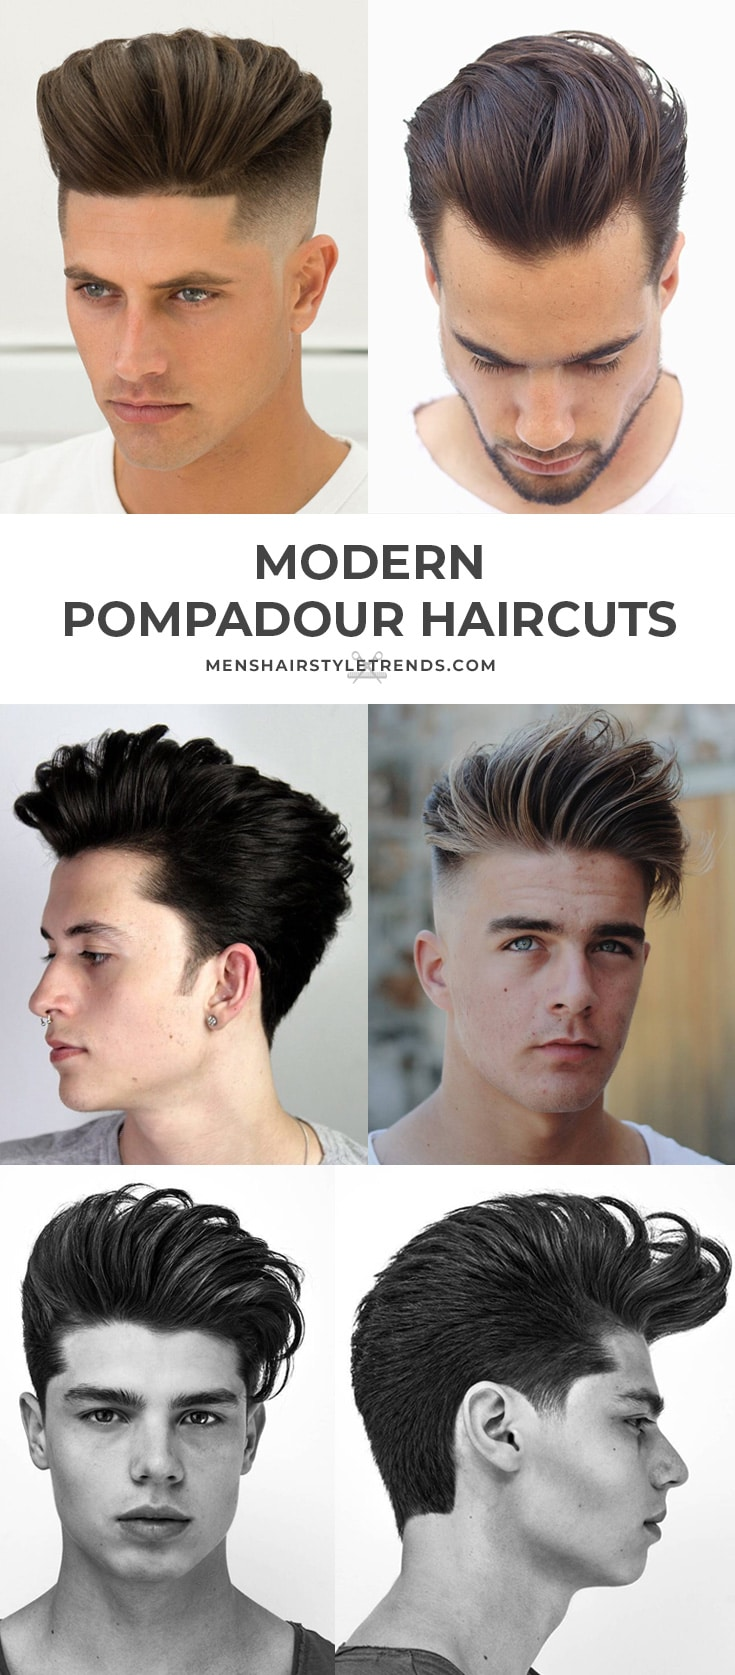 Modern Pompadour Haircuts + Hairstyles For Men